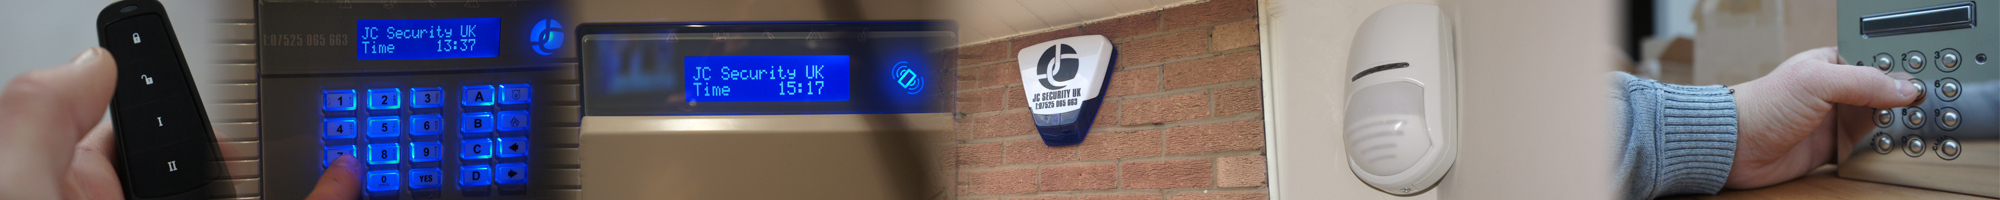 JC-Security-Market-Deeping-Intruder-Alarm-System-Bell-Alarm-Monitored-Alarm-Private-Telephone-Alarm-1